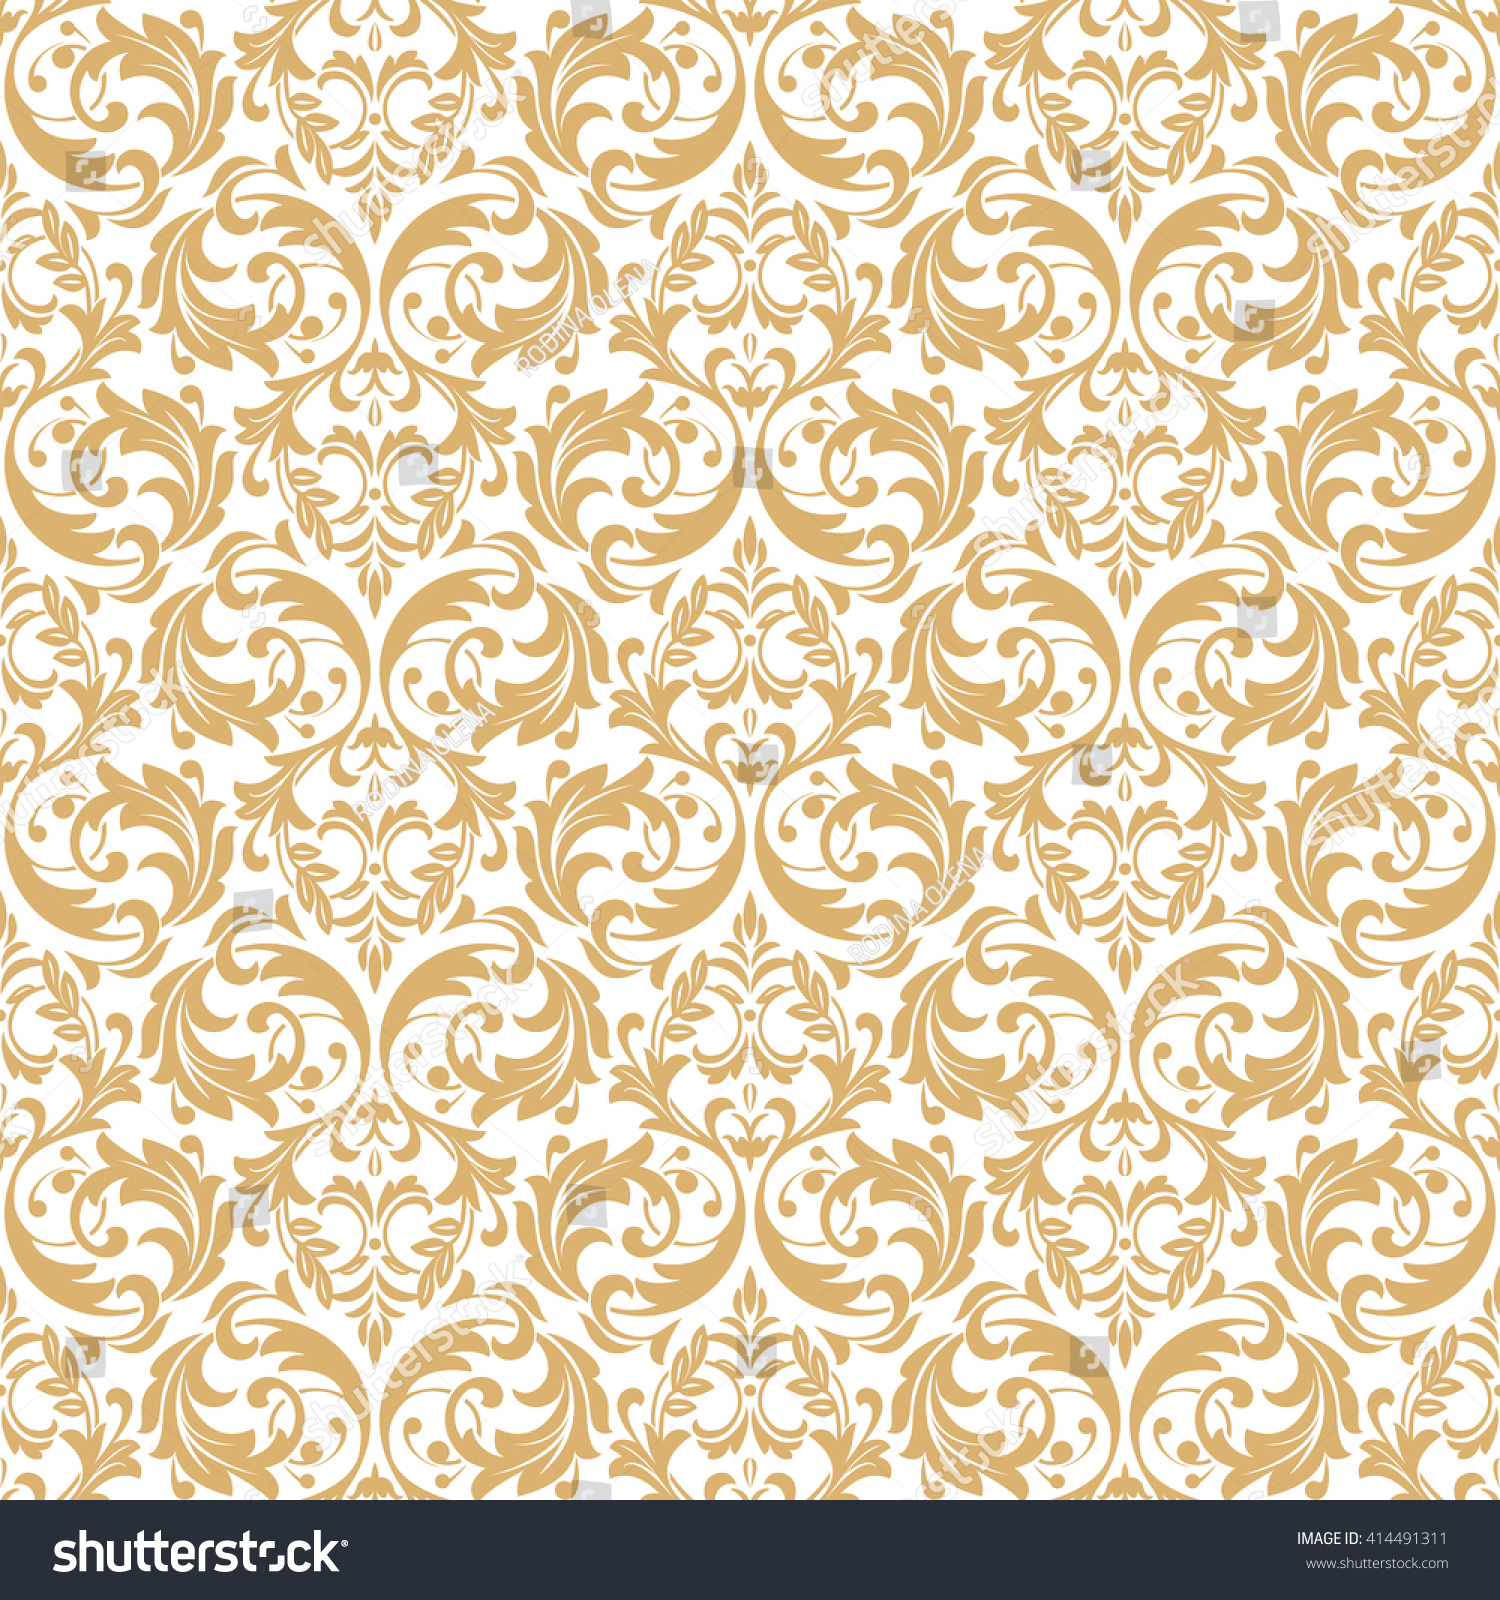 Floral Pattern Wallpaper Baroque Damask Seamless Vector Background White And Gold Ornament